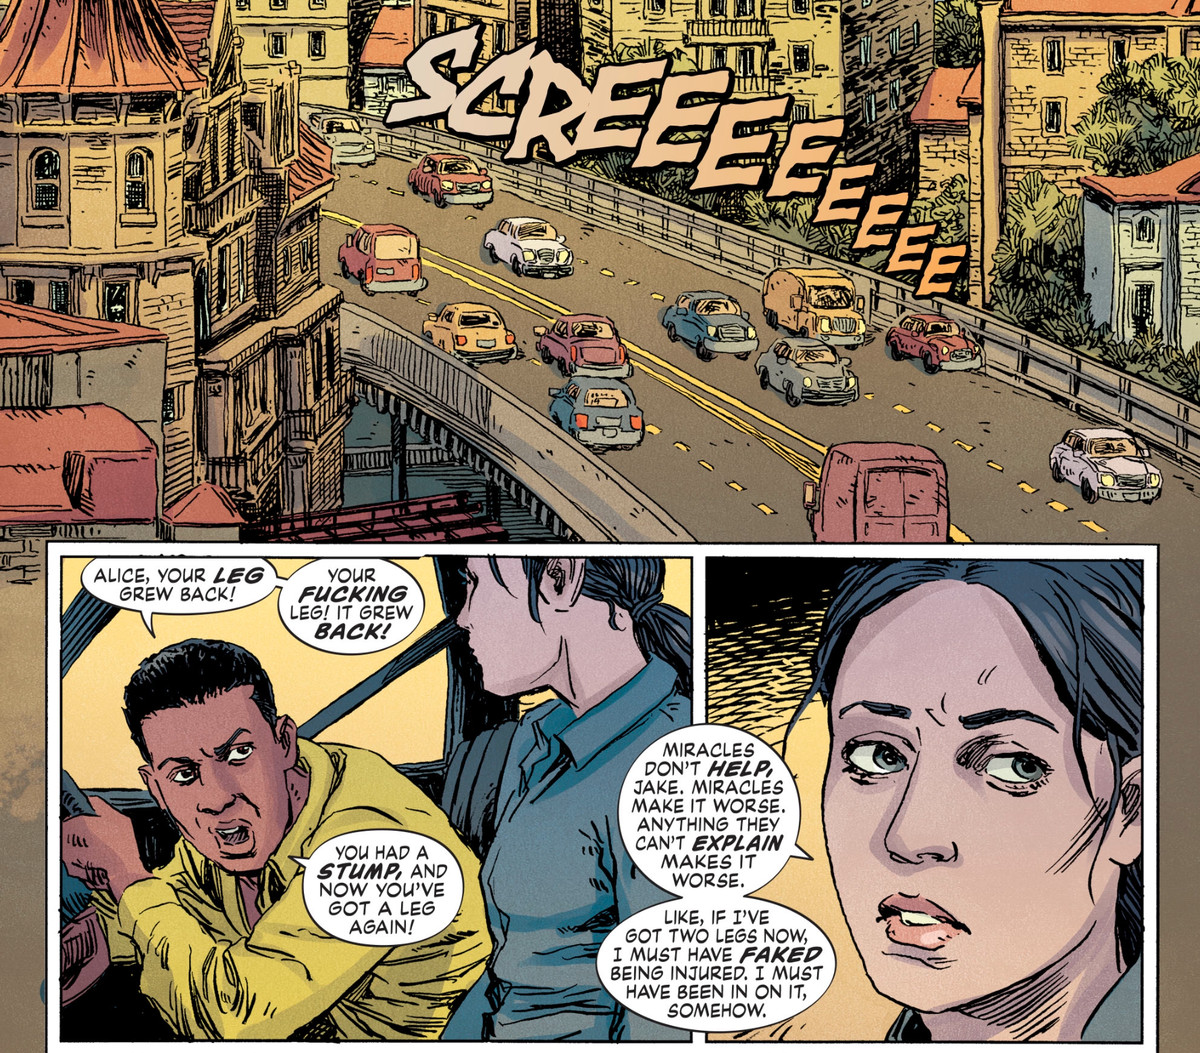 """Jake brings the car to a screeching halt as he yells, """"Alice, your leg grew back! [...] You had a stump, and now you've got a leg again!"""" Alice wearily tells him that that evidence is too unbelievable to make people trust her version of events, in The Dollhouse Family #5, DC Comics (2020)."""